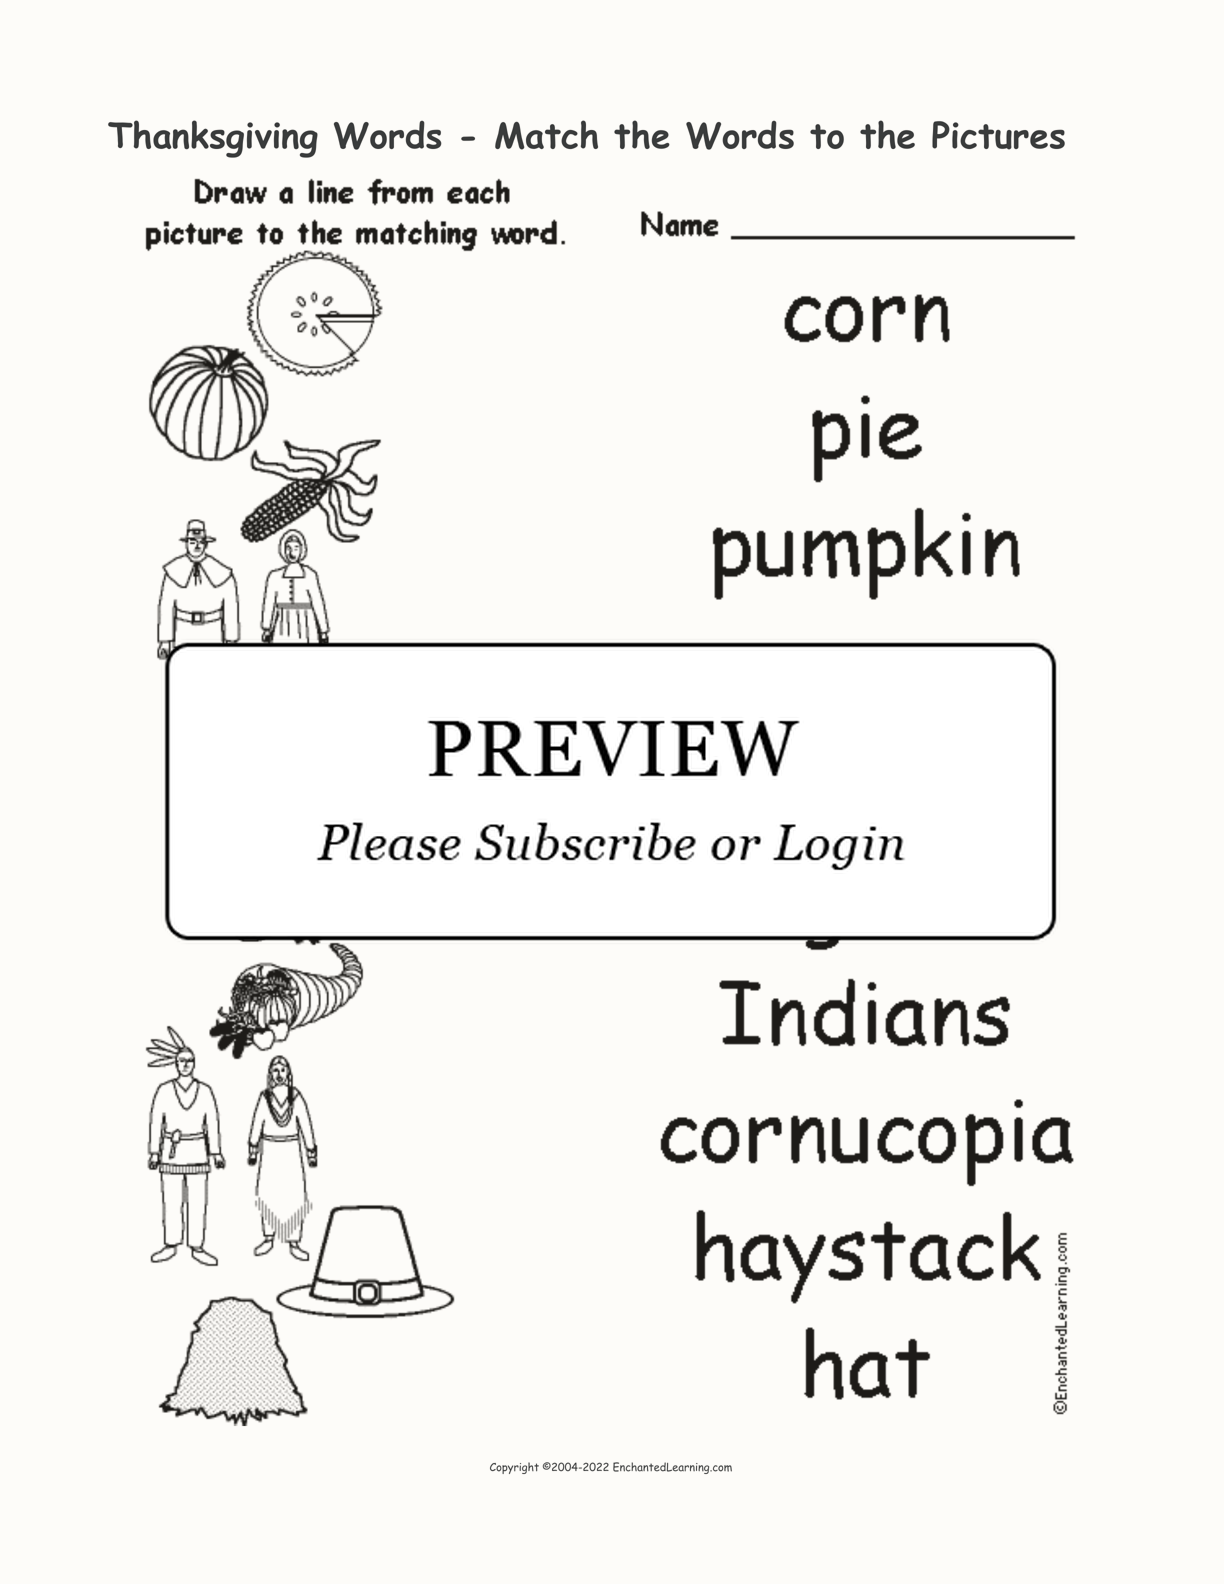 Thanksgiving Words - Match the Words to the Pictures interactive worksheet page 1